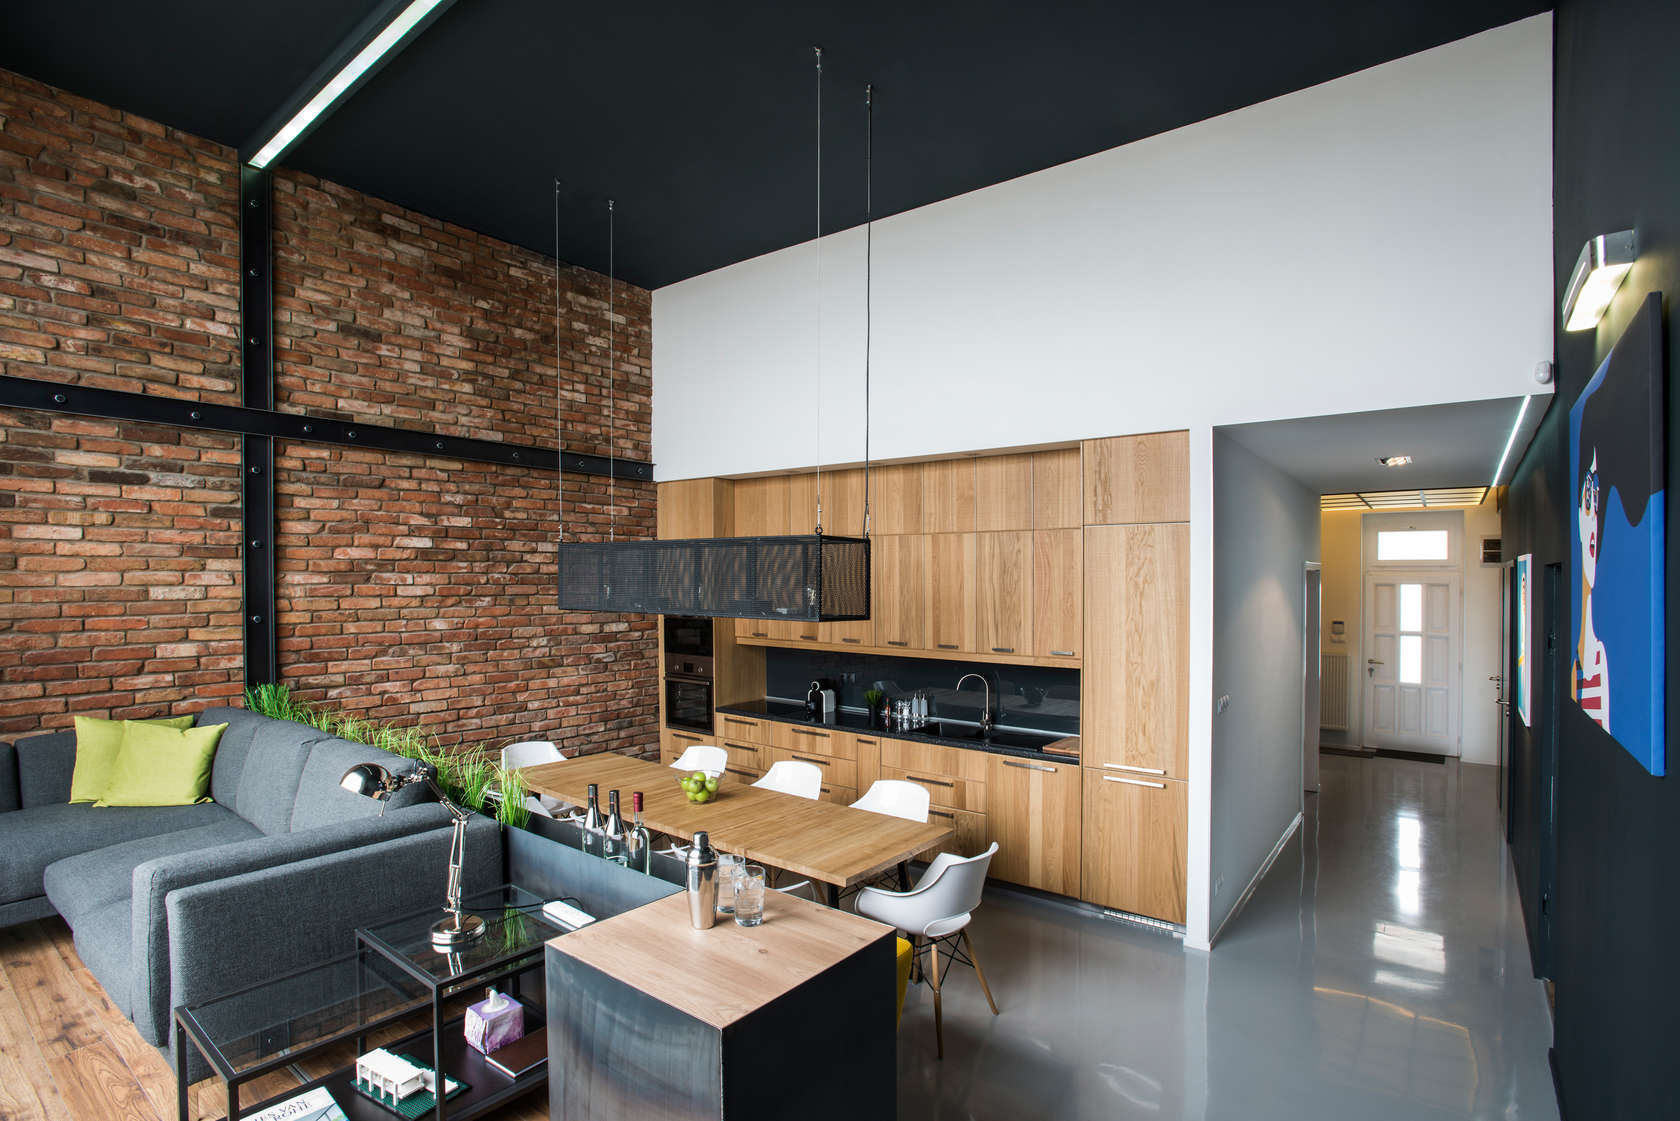 Designing Kitchen Cabinets Modern Loft With Surprising Elements